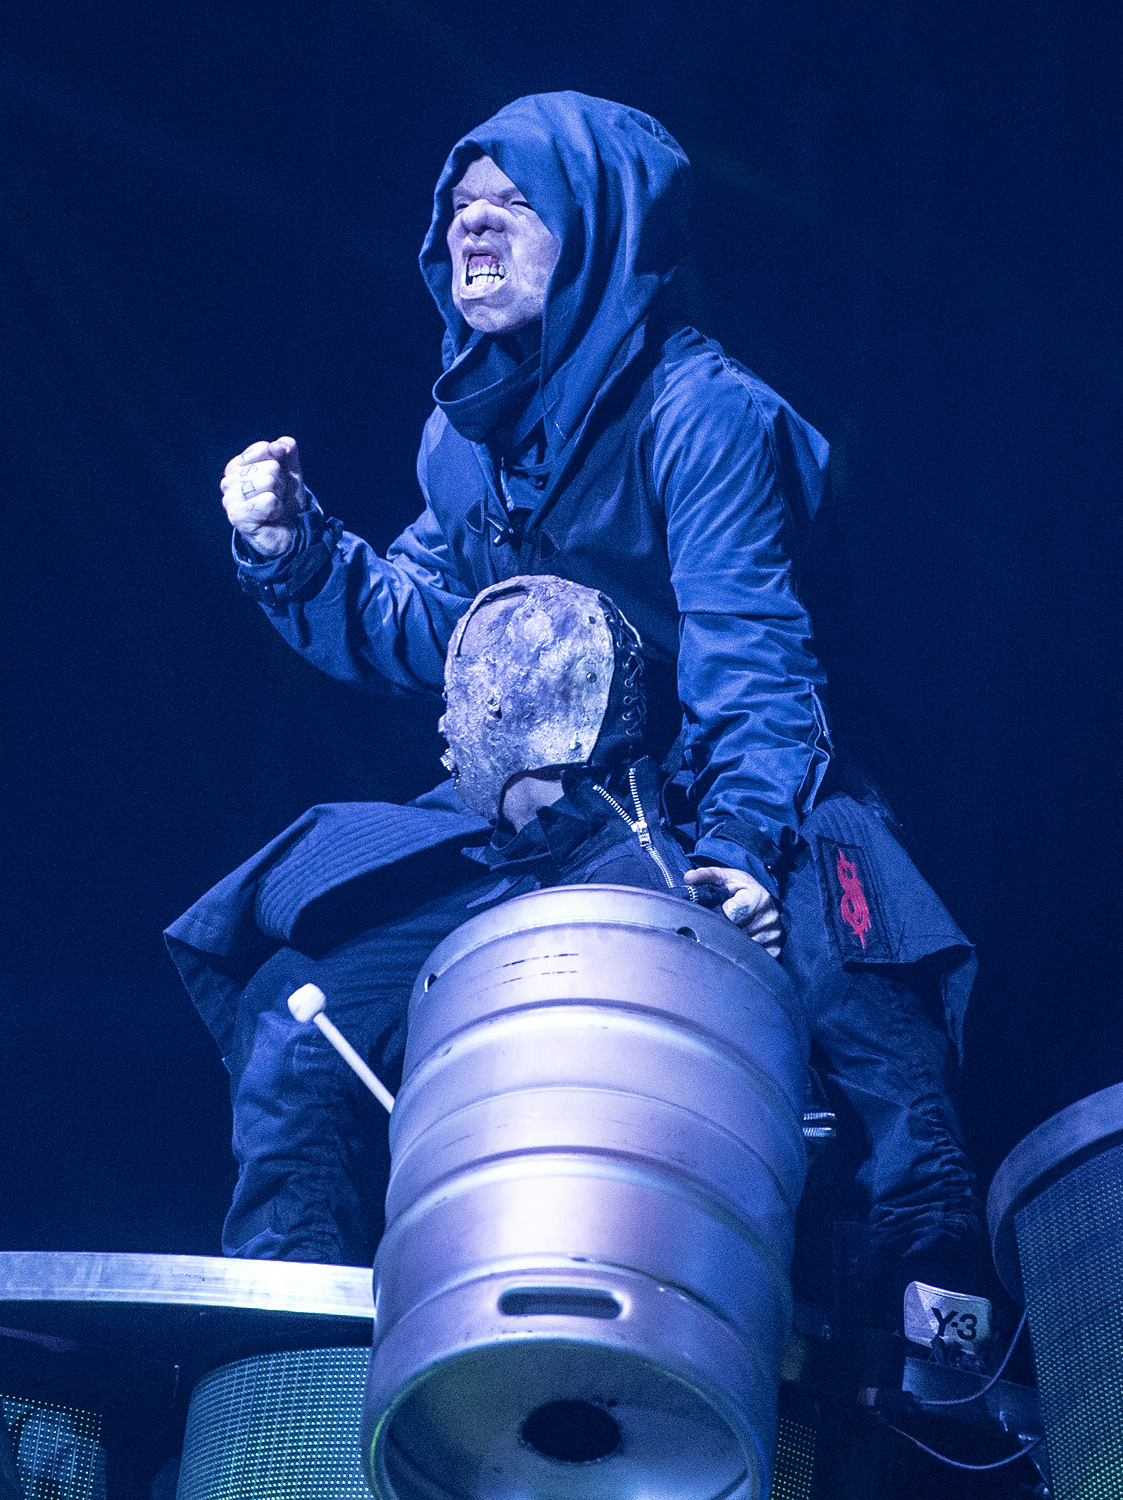 Slipknot_June2019_DownloadFestival_26.jpg